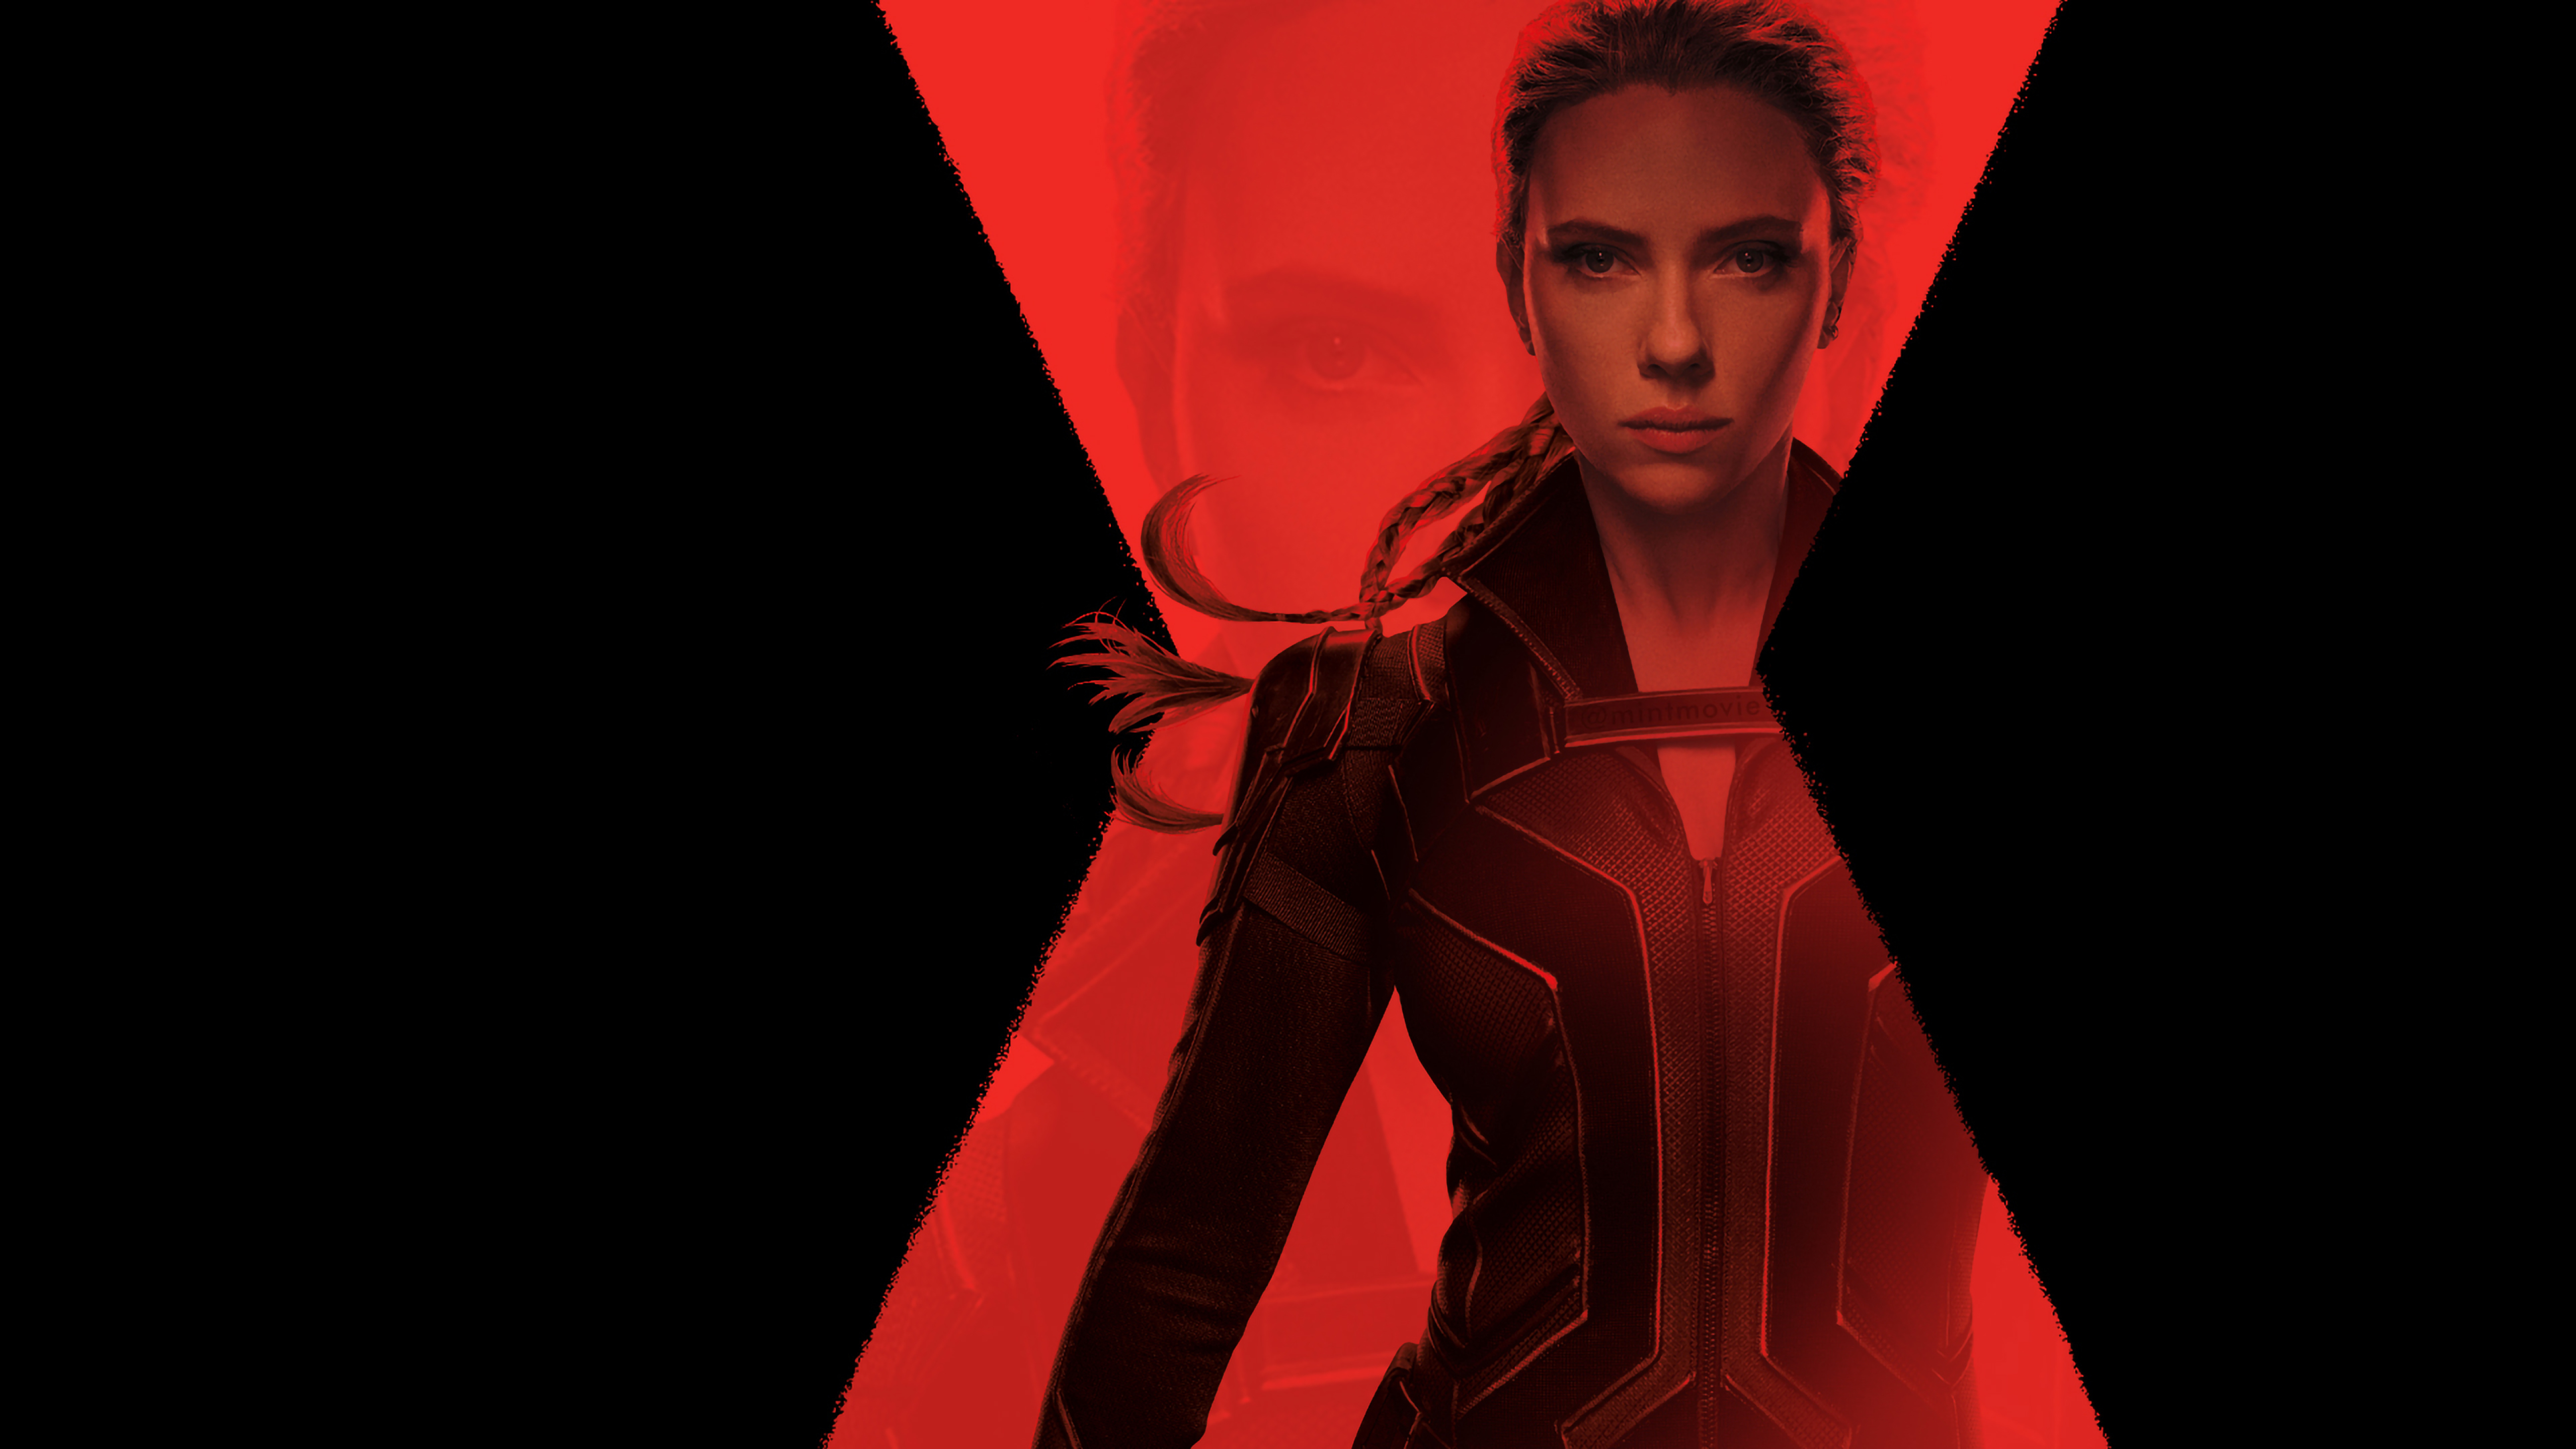 5120x2880 4K Black Widow Movie 5K Wallpaper, HD Movies 4K ...